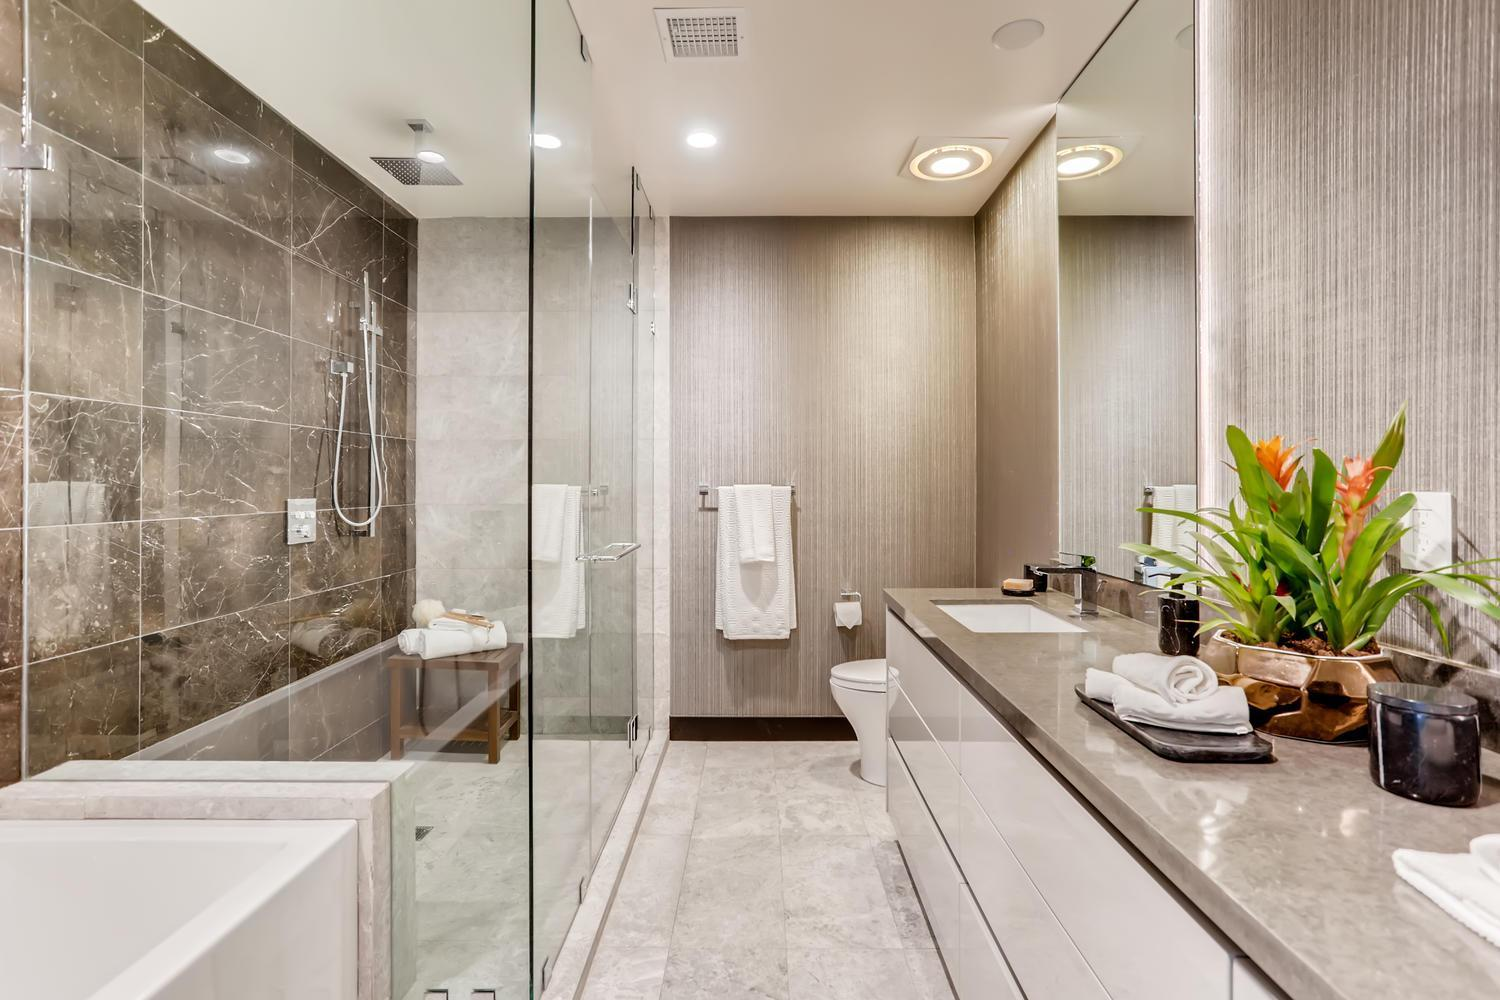 Bathroom featured in the Penthouse 6 By Adept Urban  in Los Angeles, CA